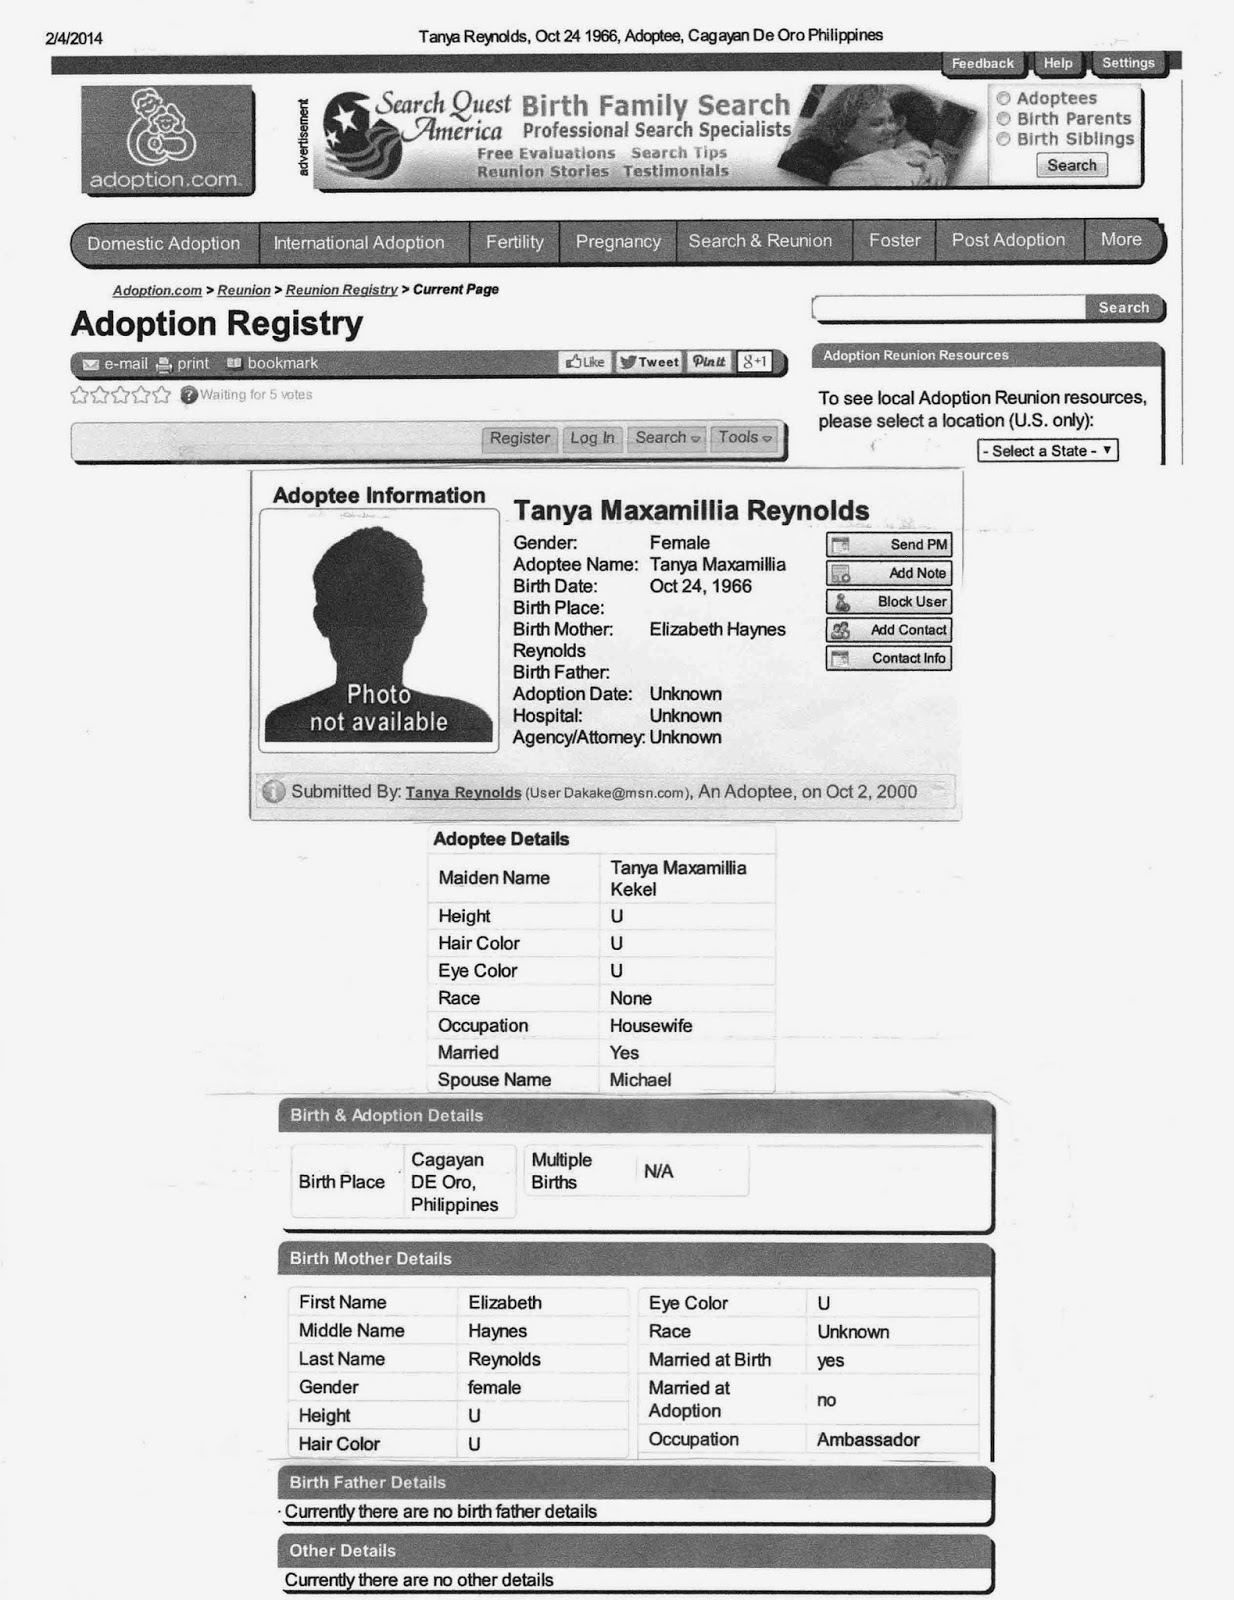 Tanya Davis Kekel's Adoption Registry Search Form circa 2014 - Click Image To Enlarge. Click Link To Go To Web Site.